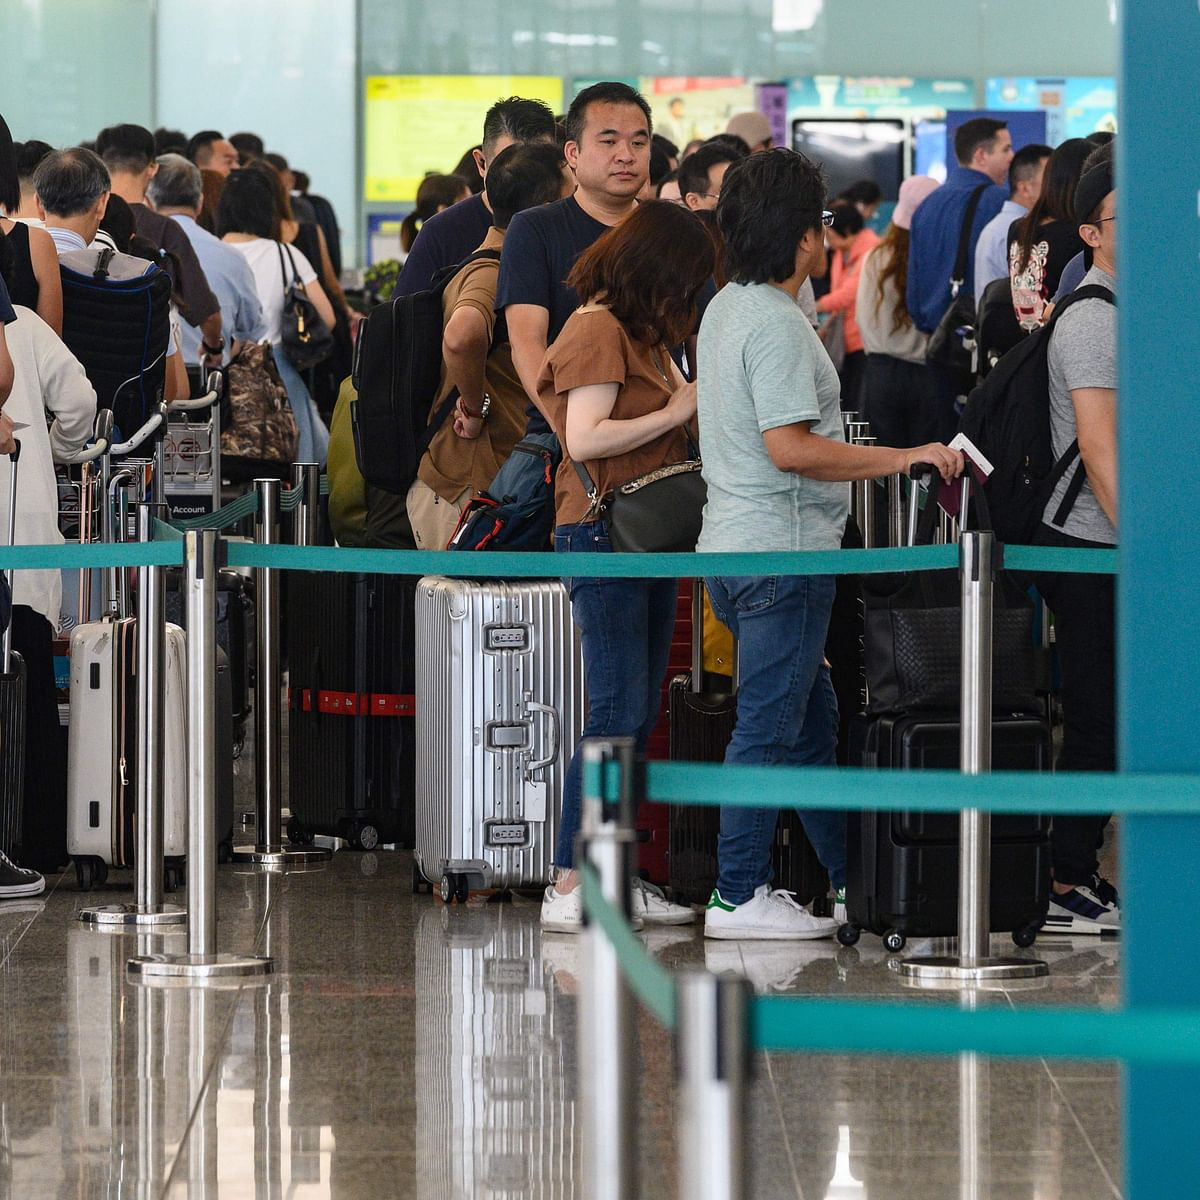 Over 215 flights cancelled in Hong Kong Airport; as city hit by strike